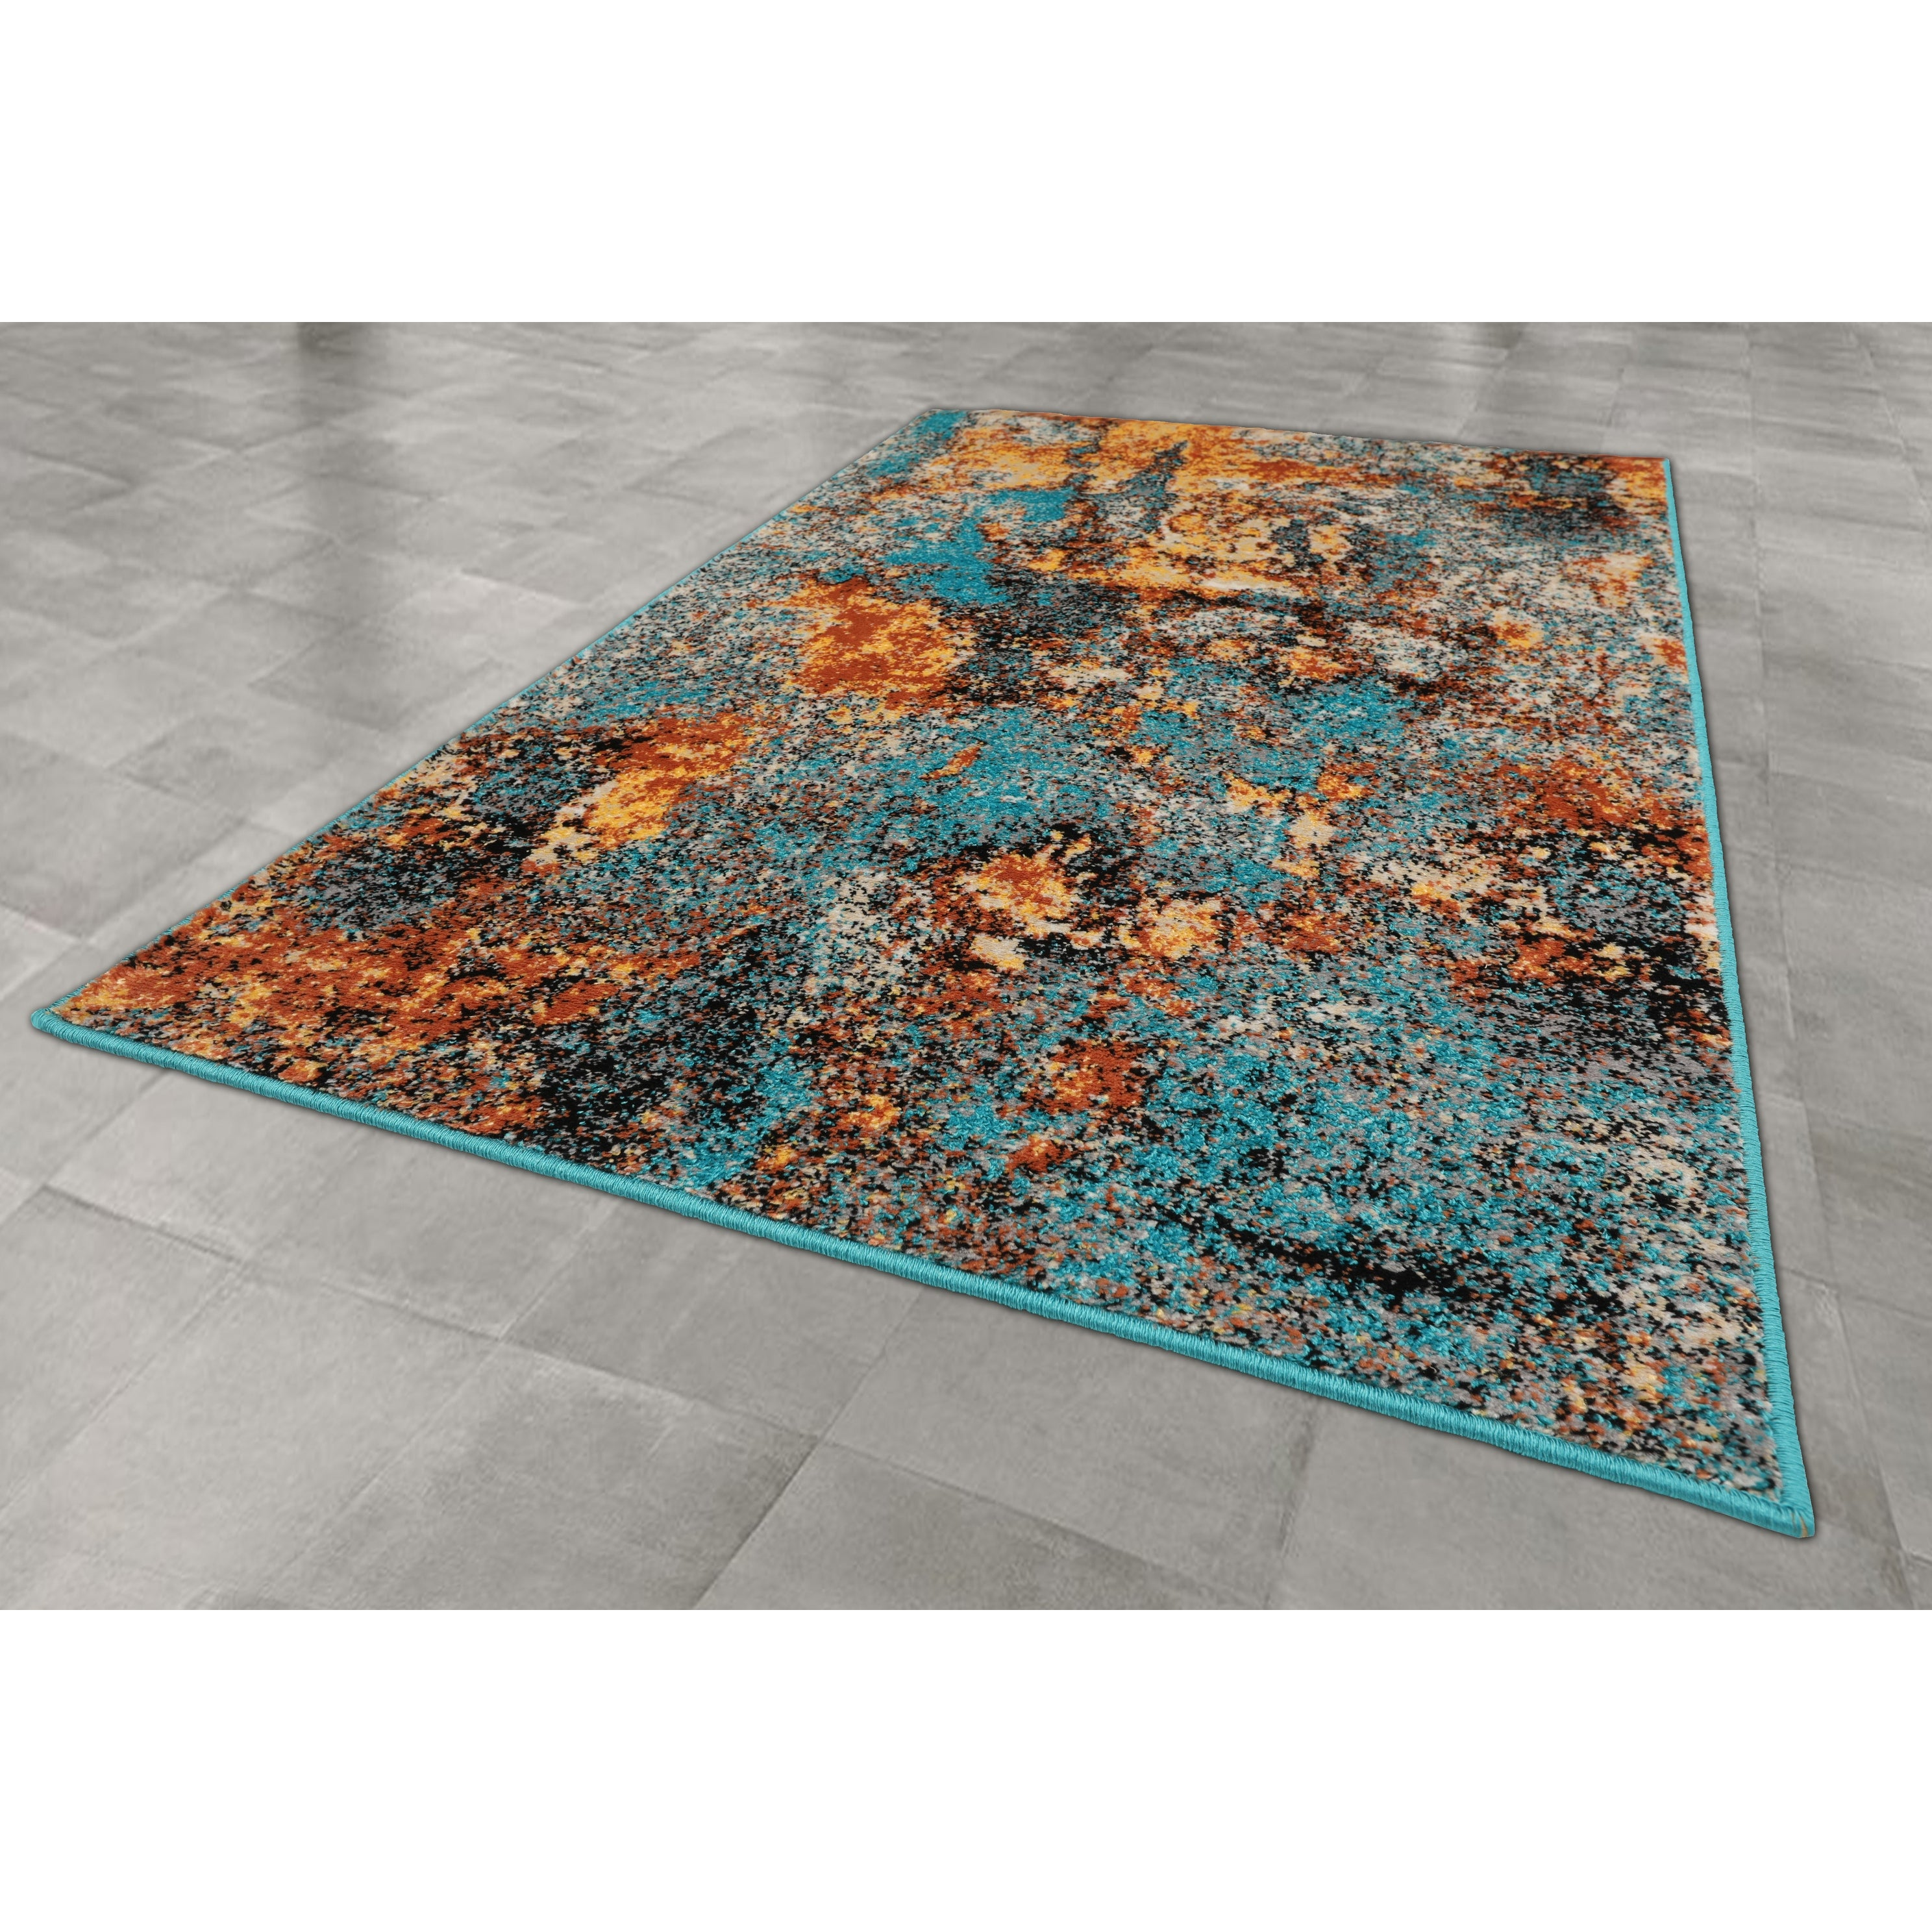 Loombloom Persian Polypropylene Autumn Modern Contemporary Oriental Area Rug Turquoise Apricot Color Overstock 32109500 9 X 12 Turquoise